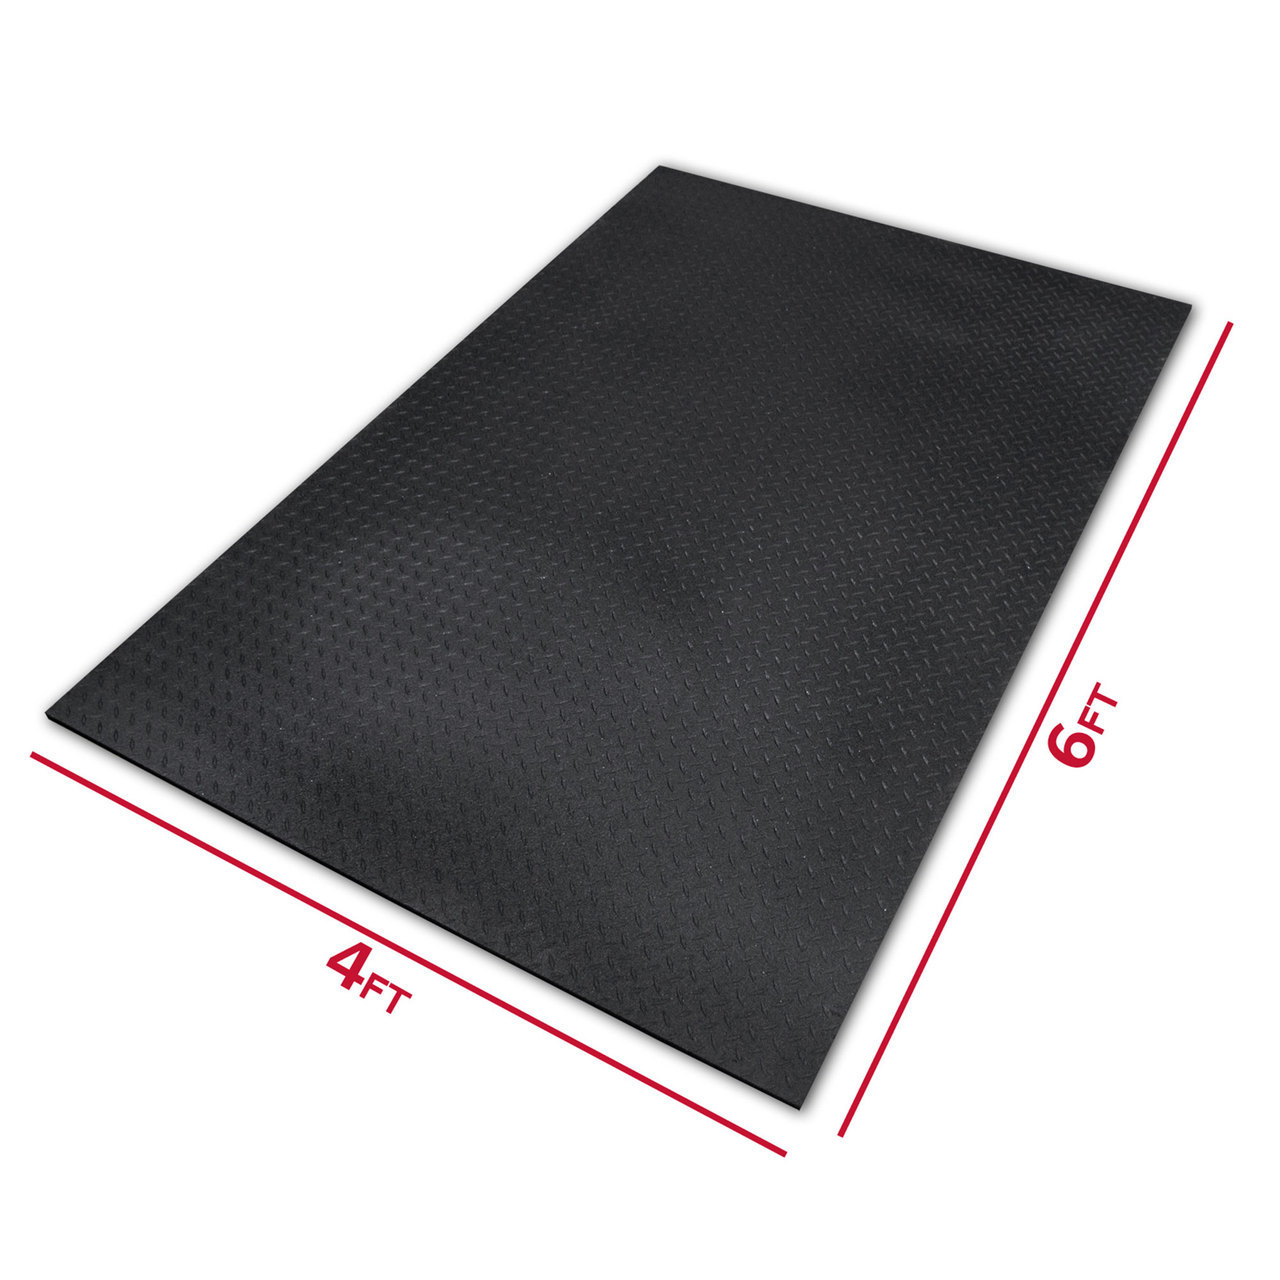 XMark Fitness XMat Ultra Thick Gym Flooring- Set of 5